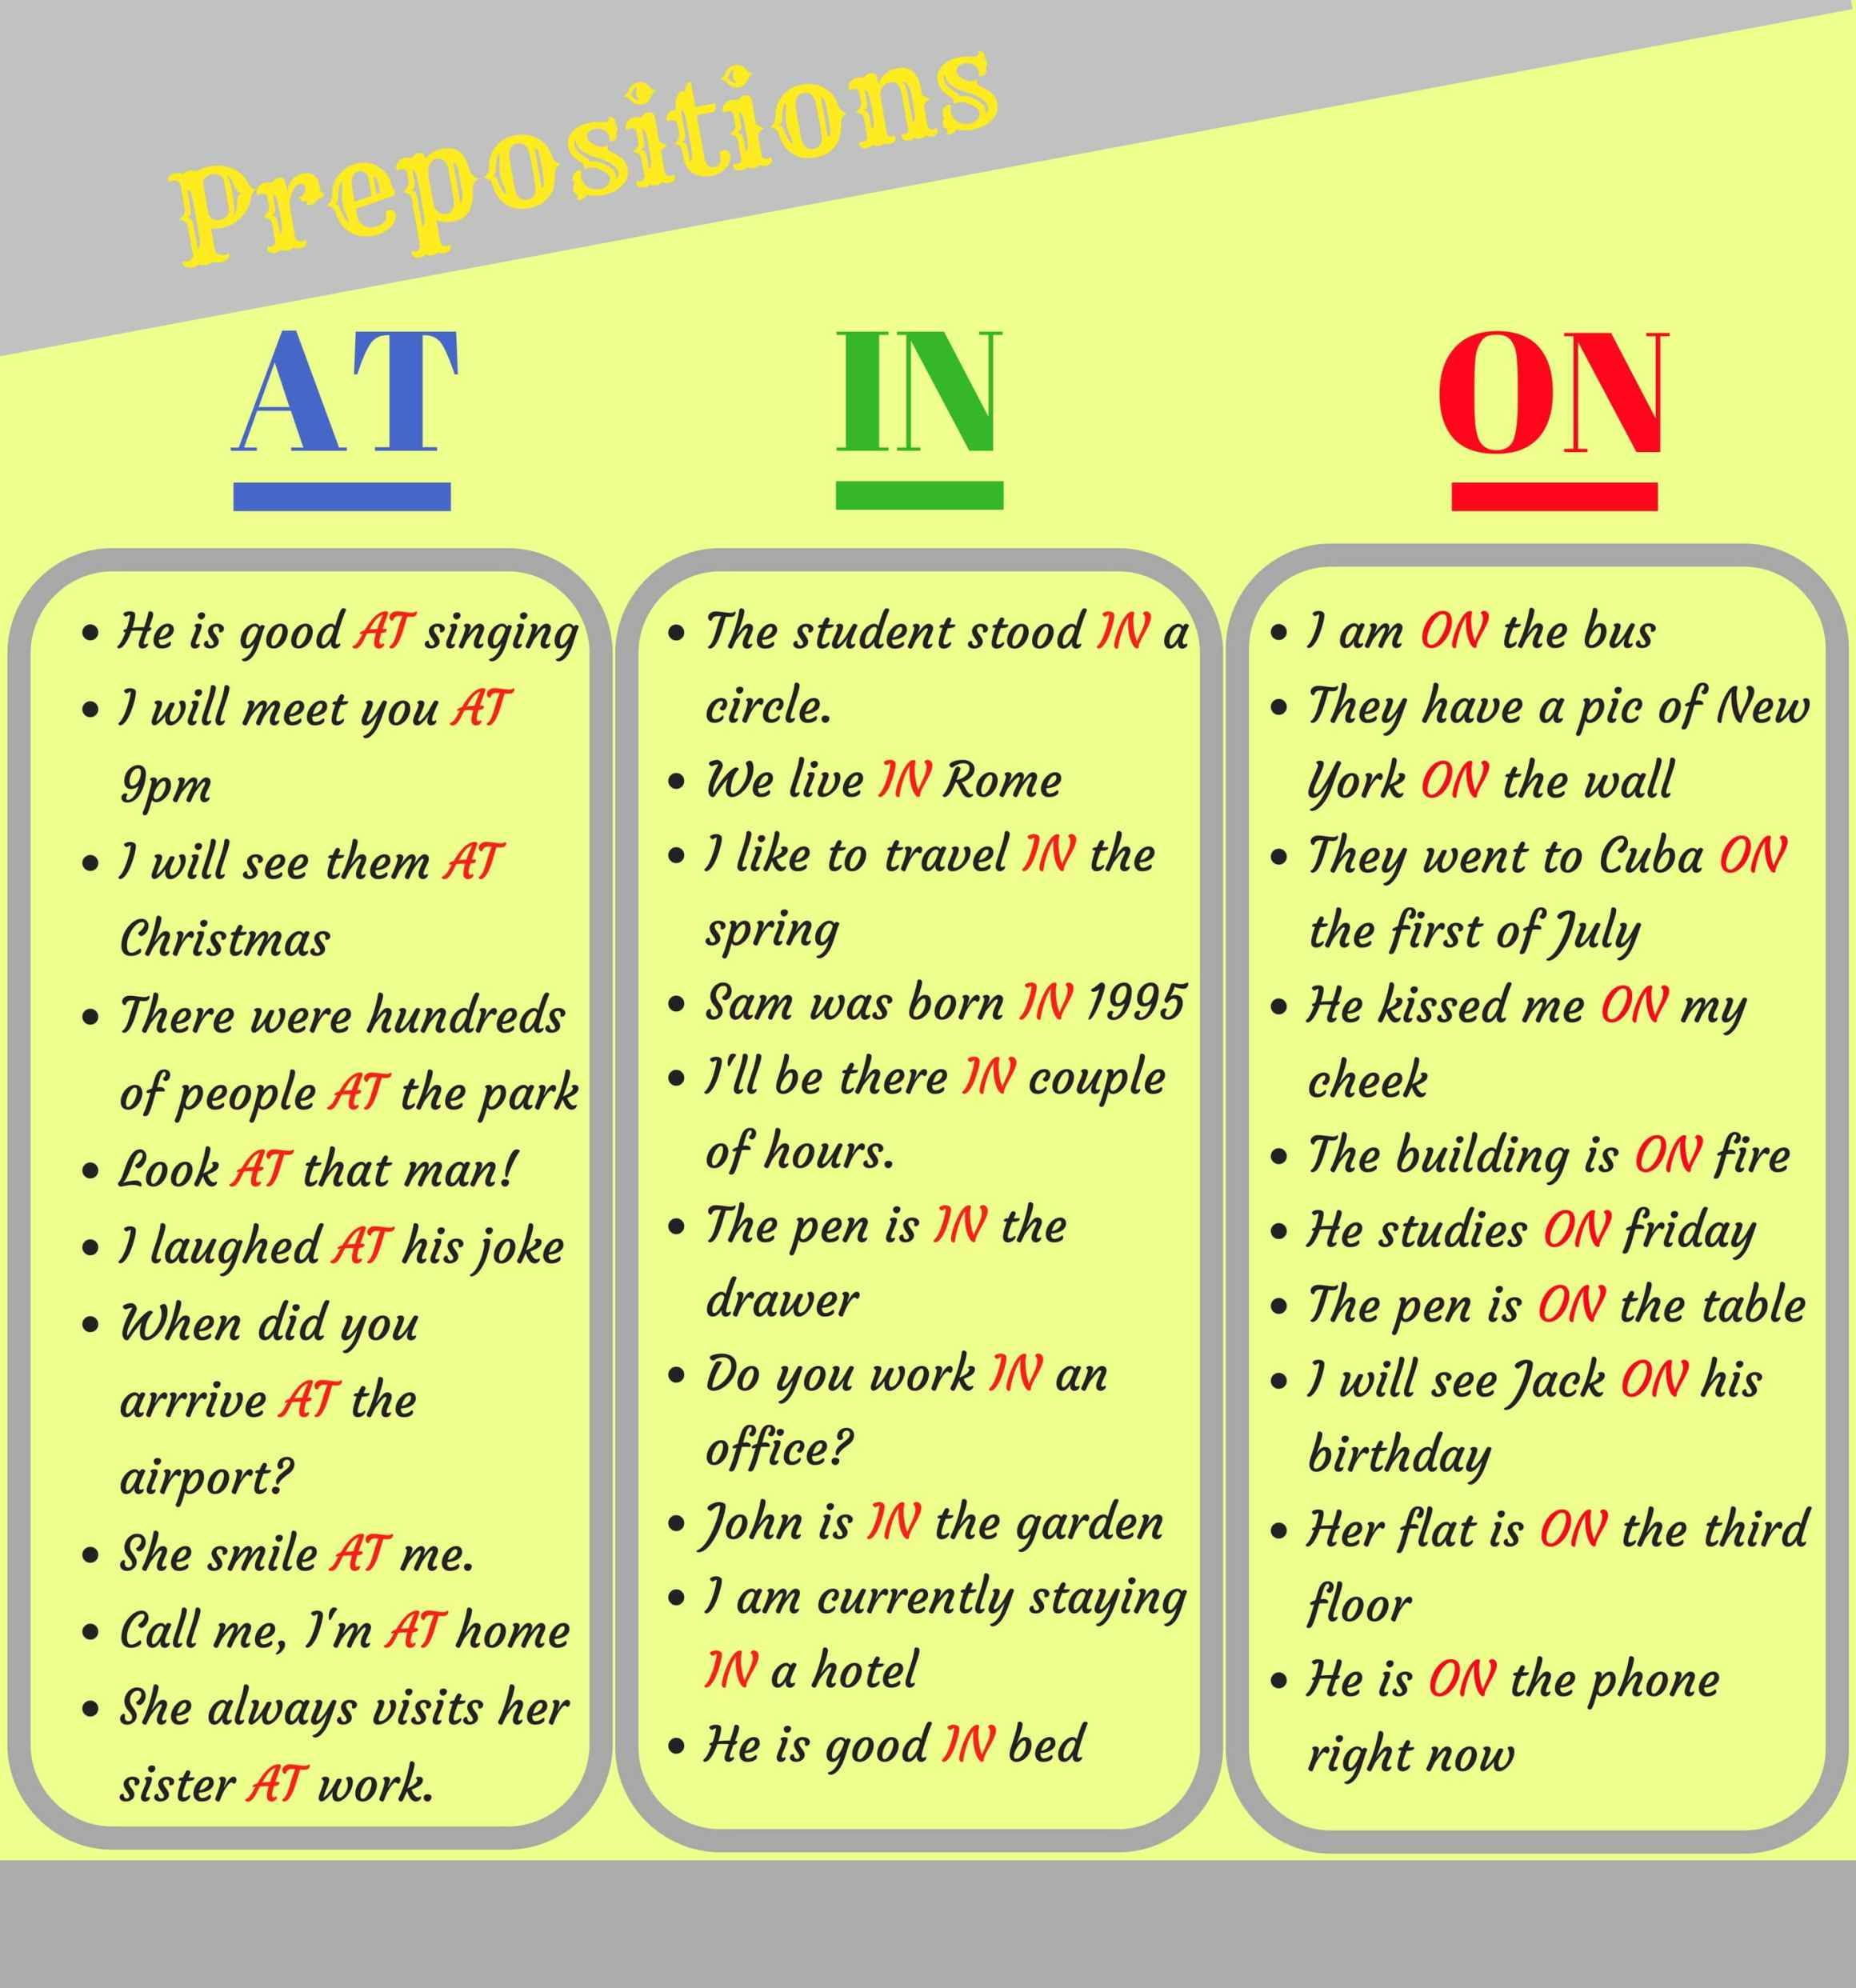 Prepositions At In On Con Imagenes